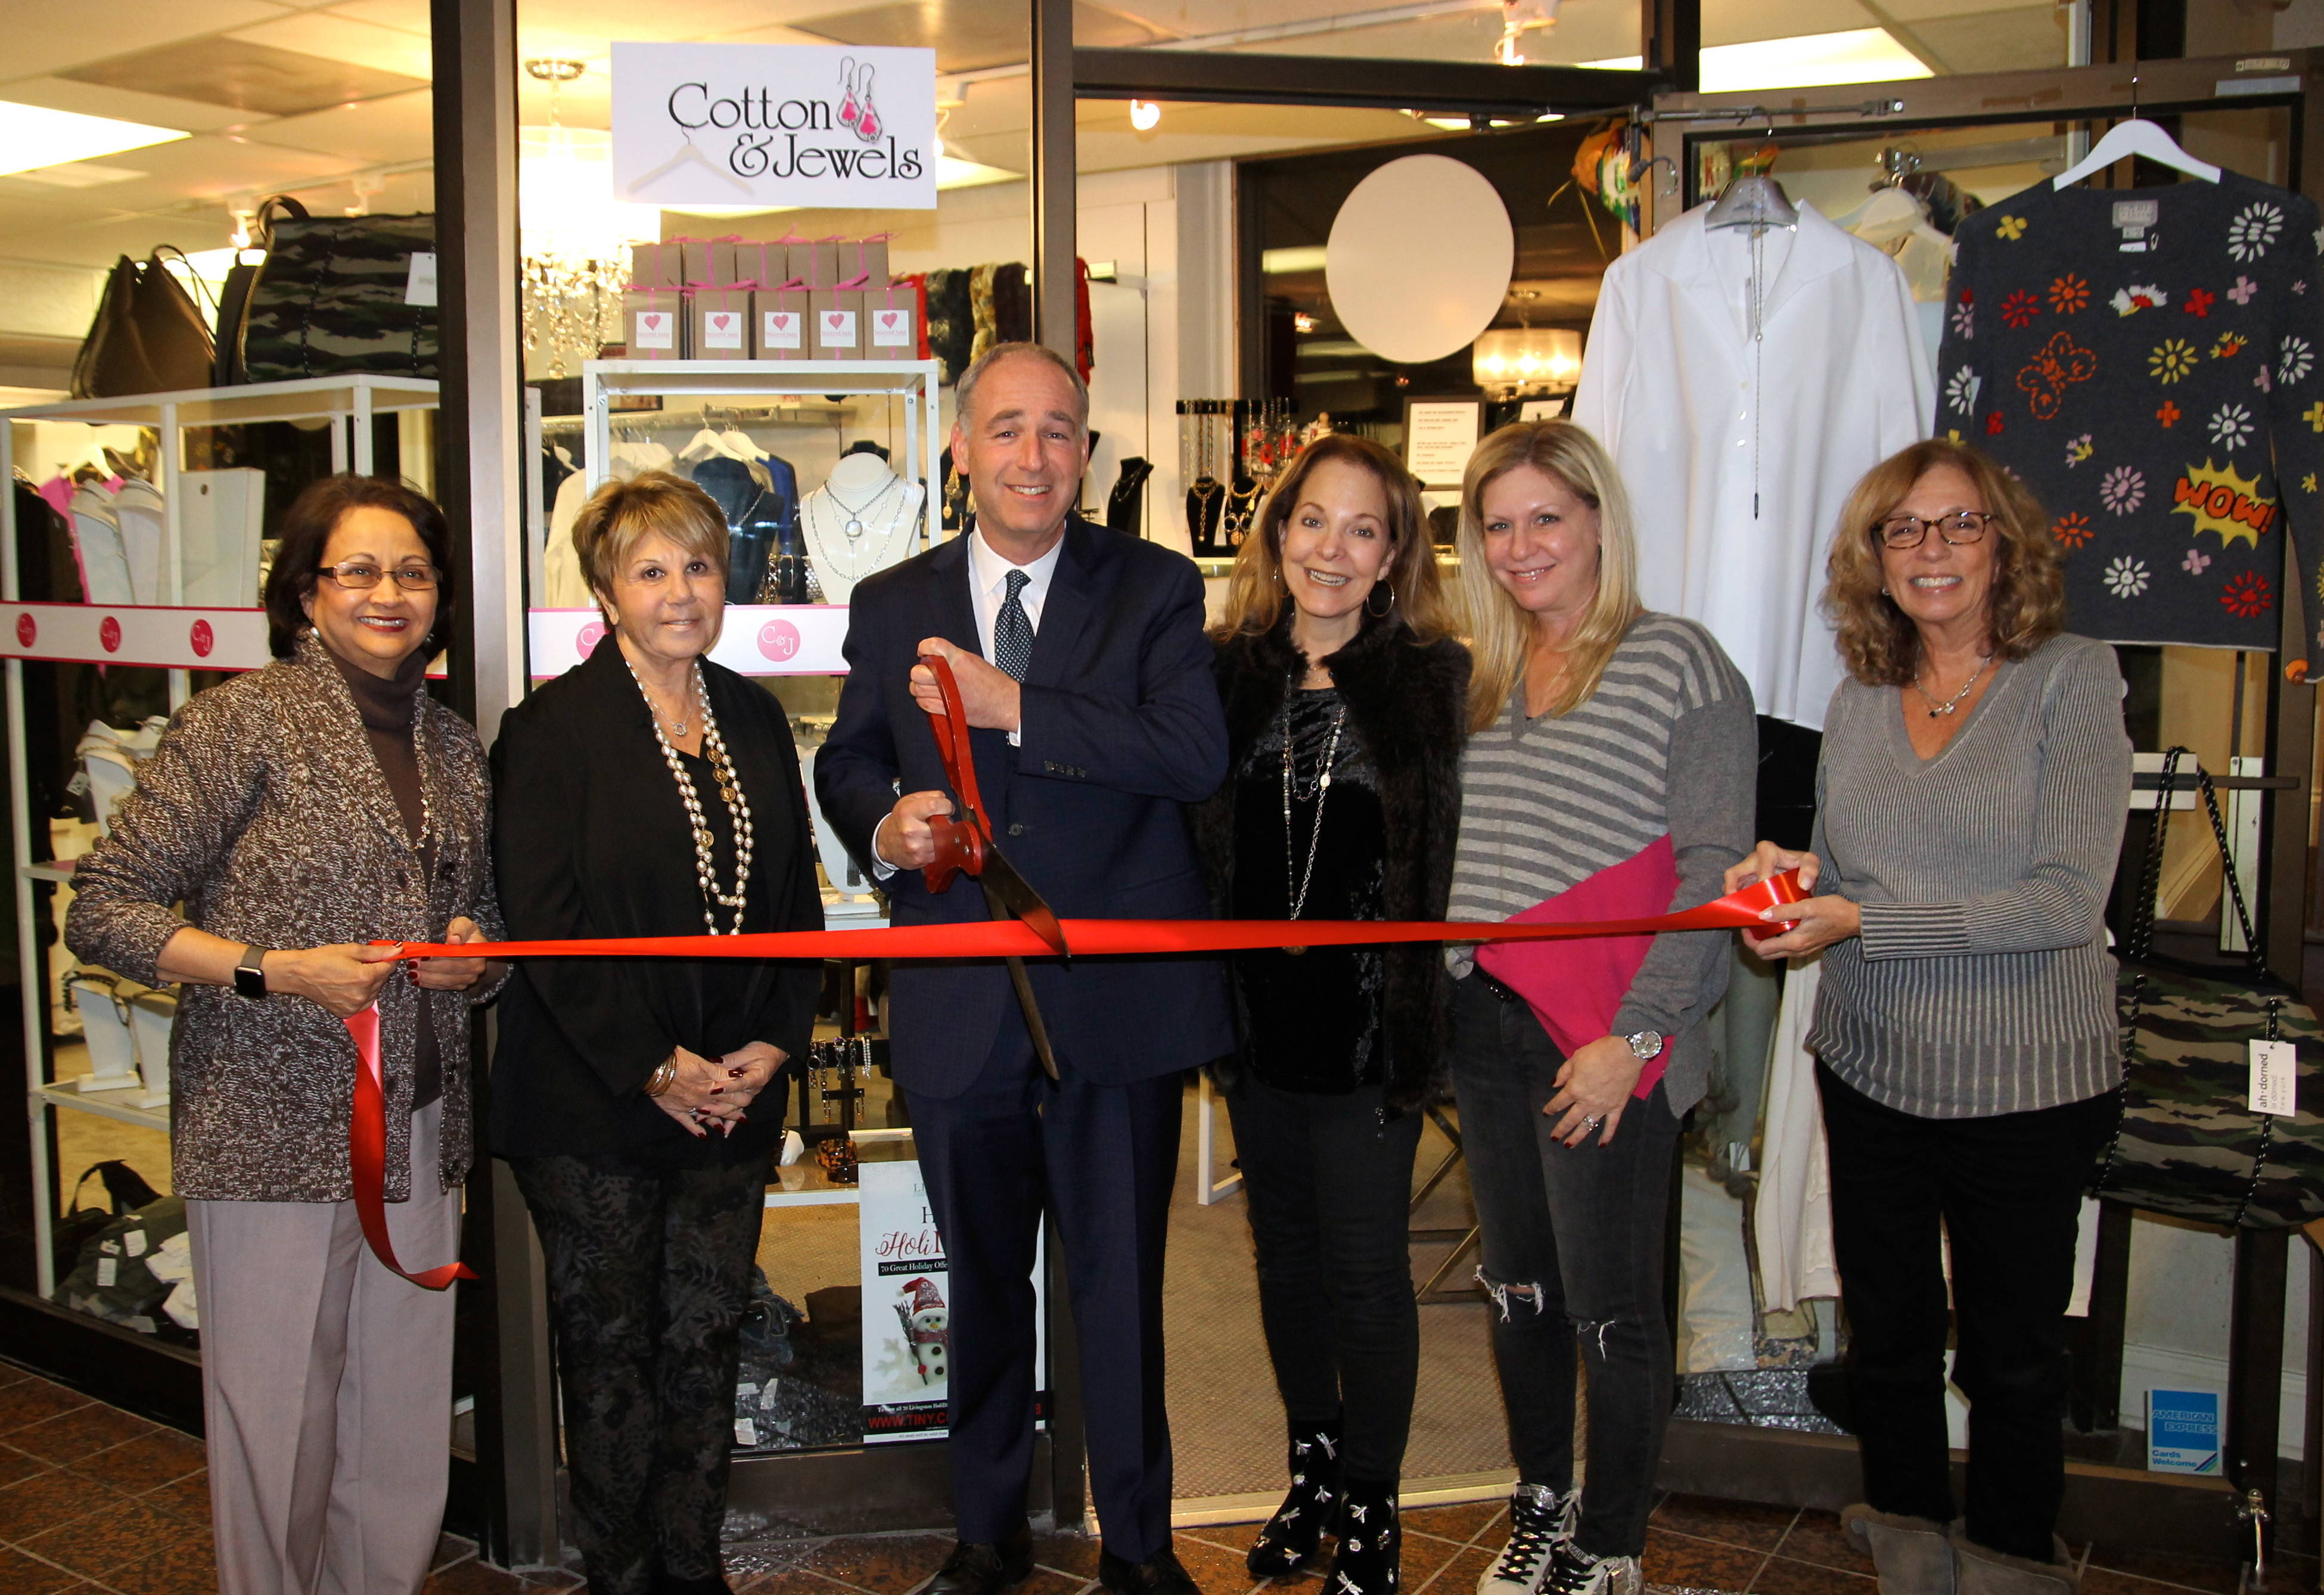 Mini Owners Lounge >> West Orange and Verona Residents Team Up to Open Cotton & Jewels in Livingston | TAPinto